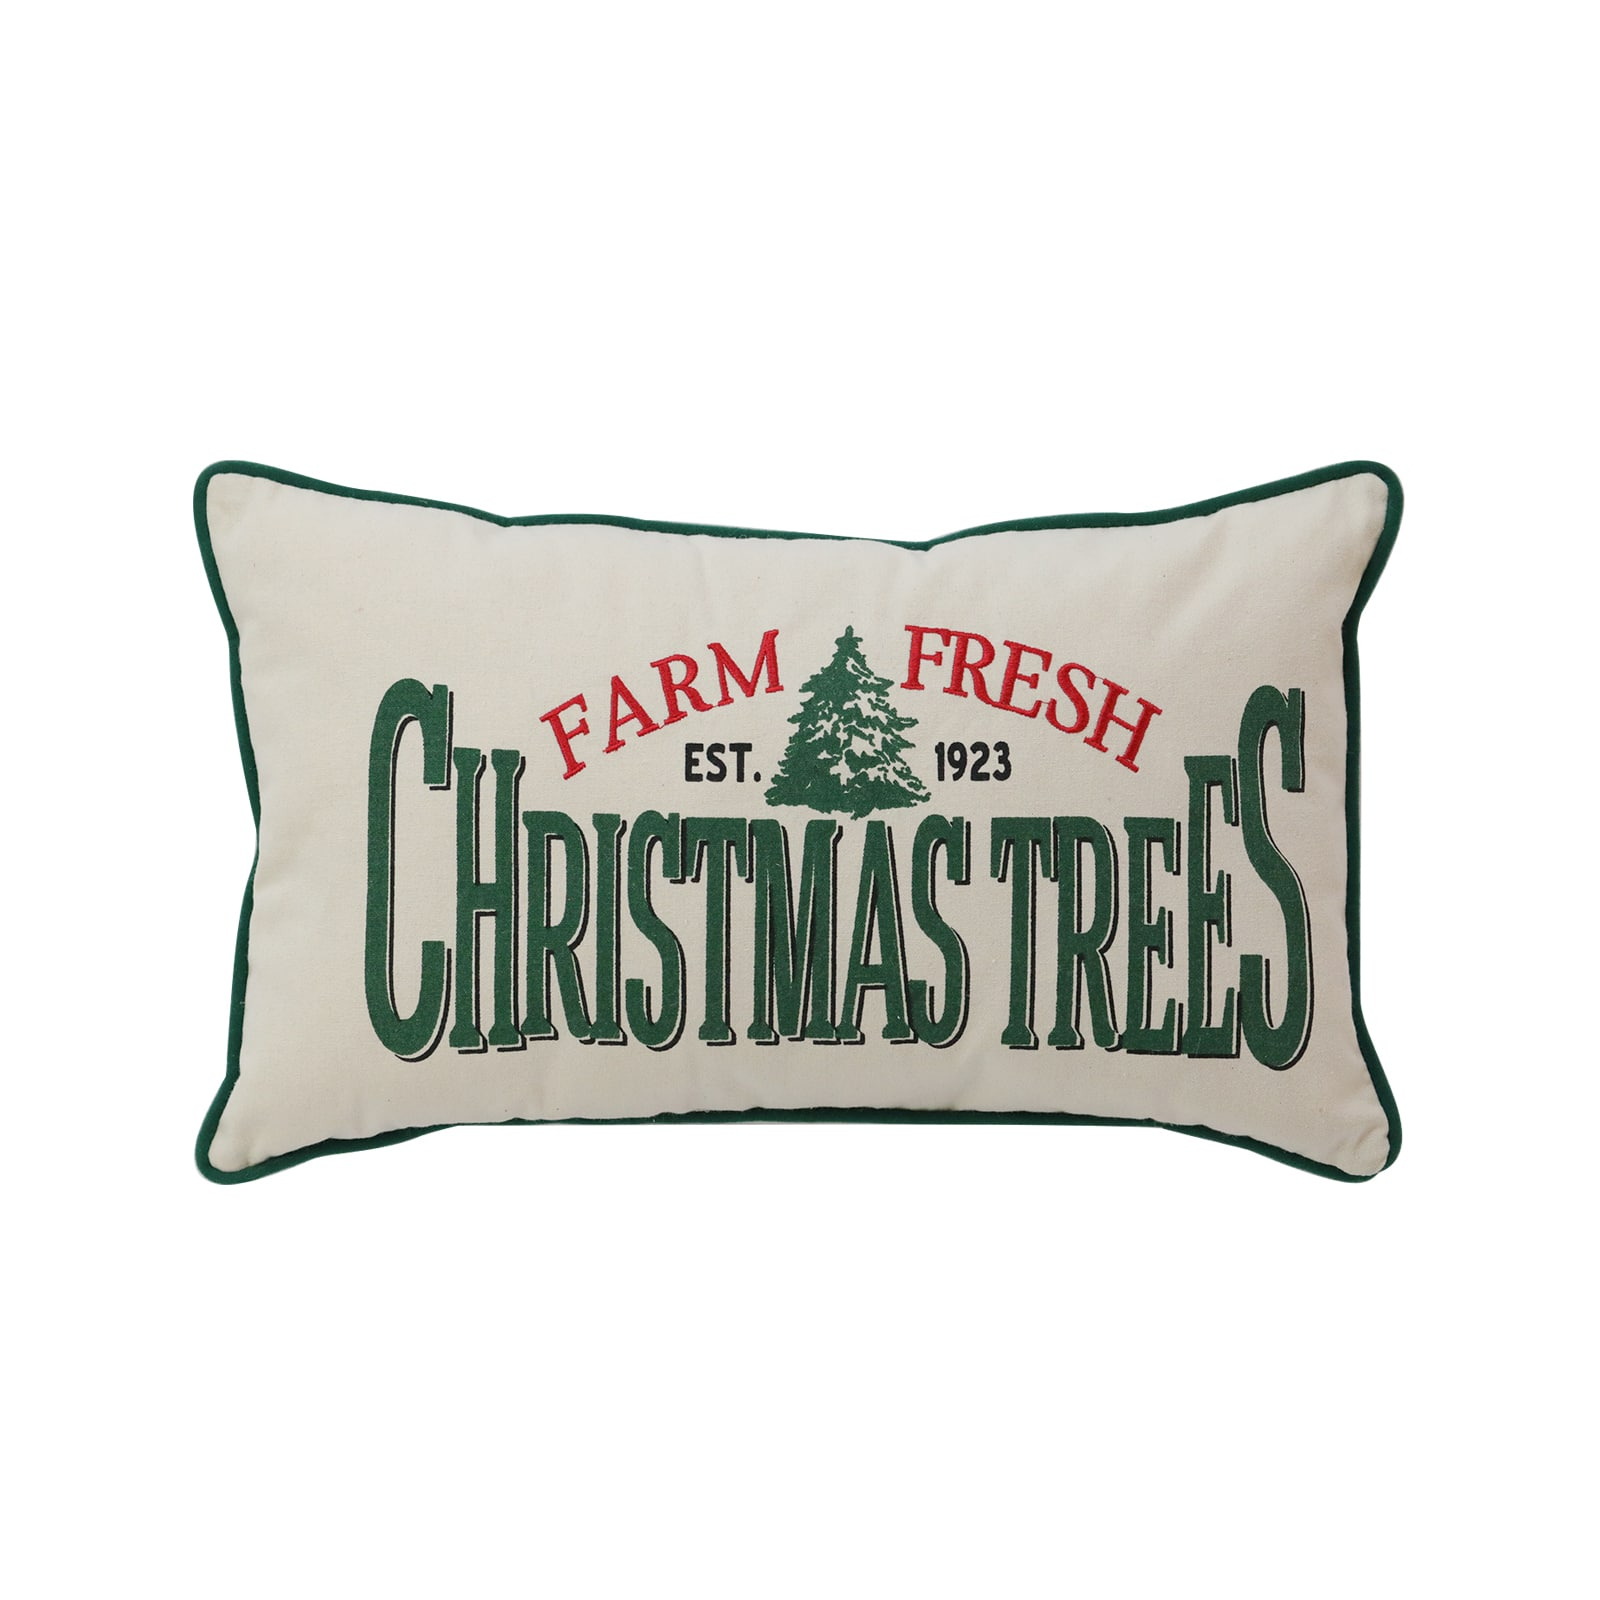 AshlandChristmas Trees Lumbar Pillow By